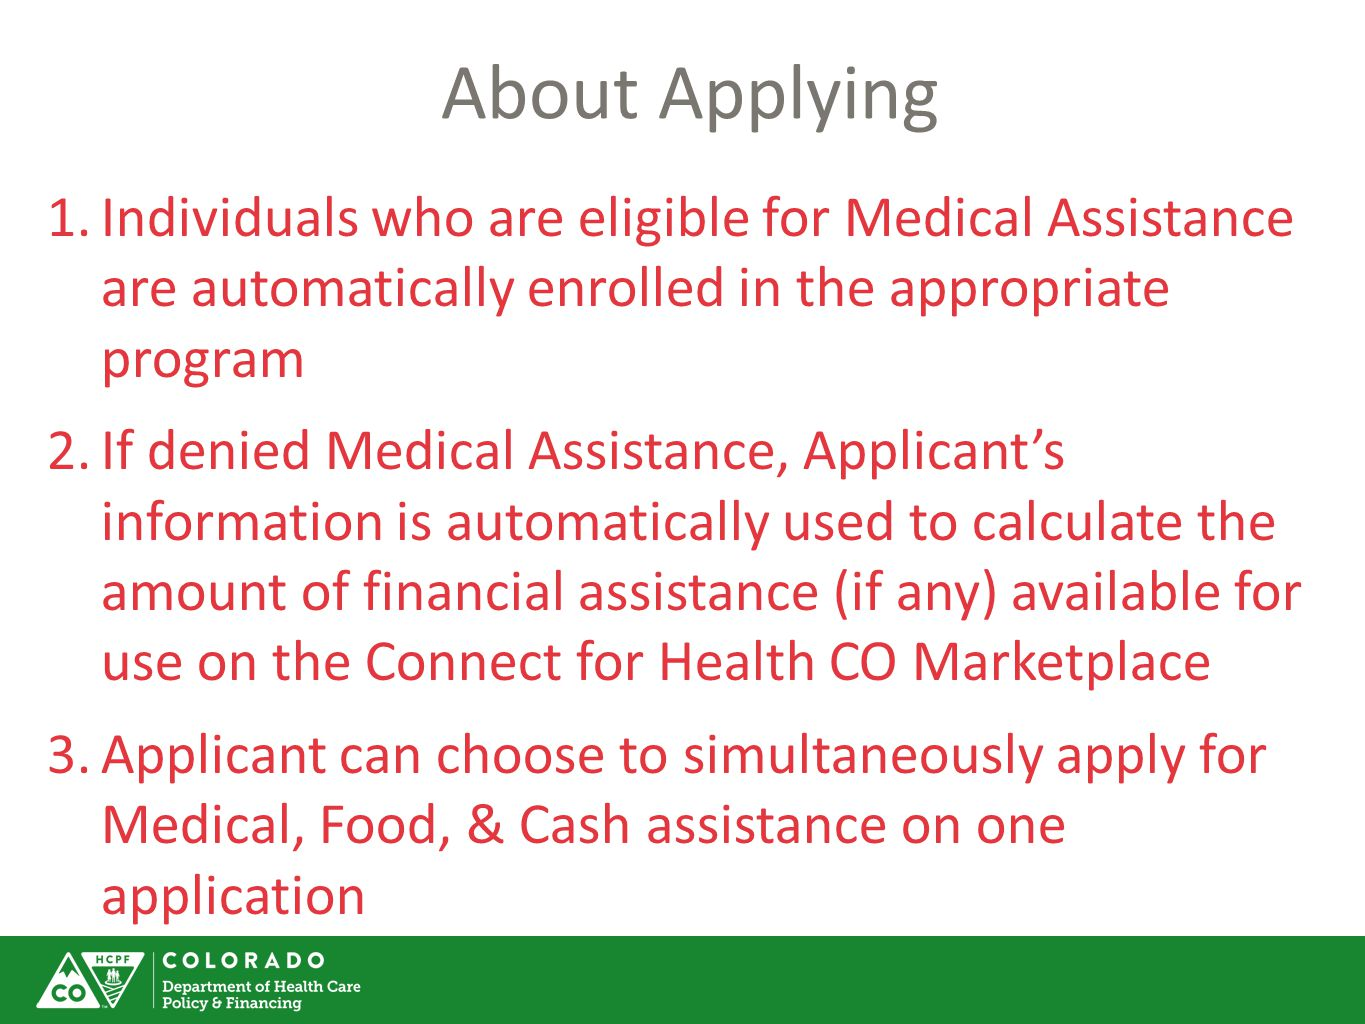 About Applying Individuals who are eligible for Medical Assistance are automatically enrolled in the appropriate program.